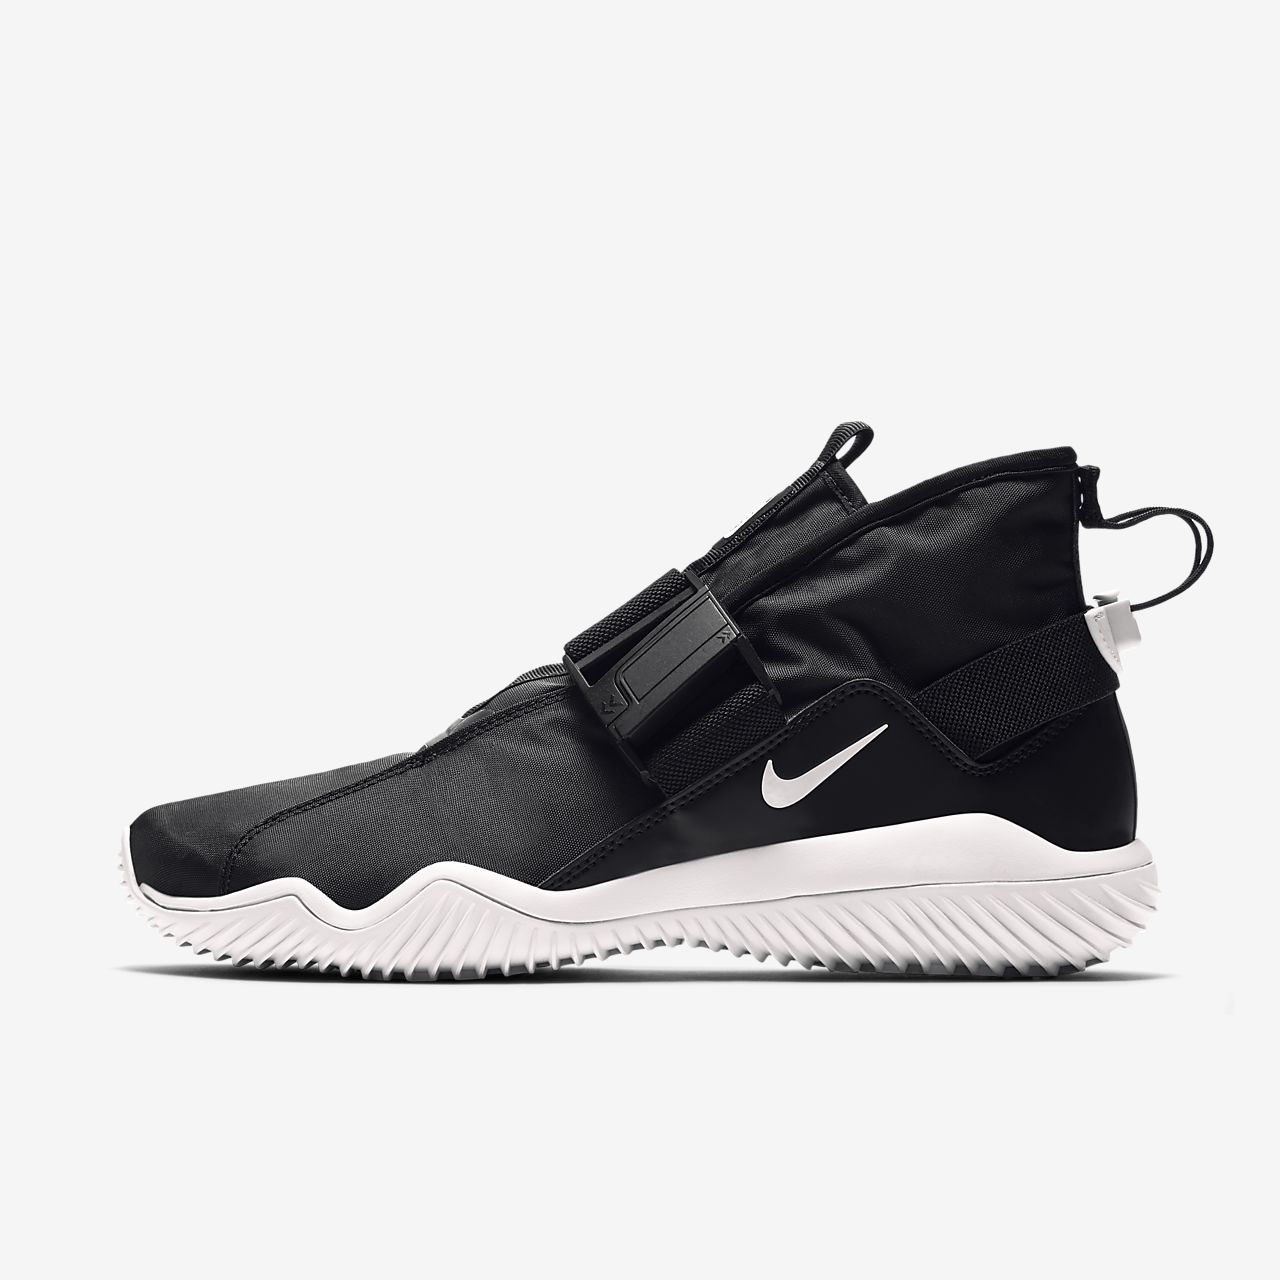 Nike Komyuter sneakers in China sale online lX8webu39L